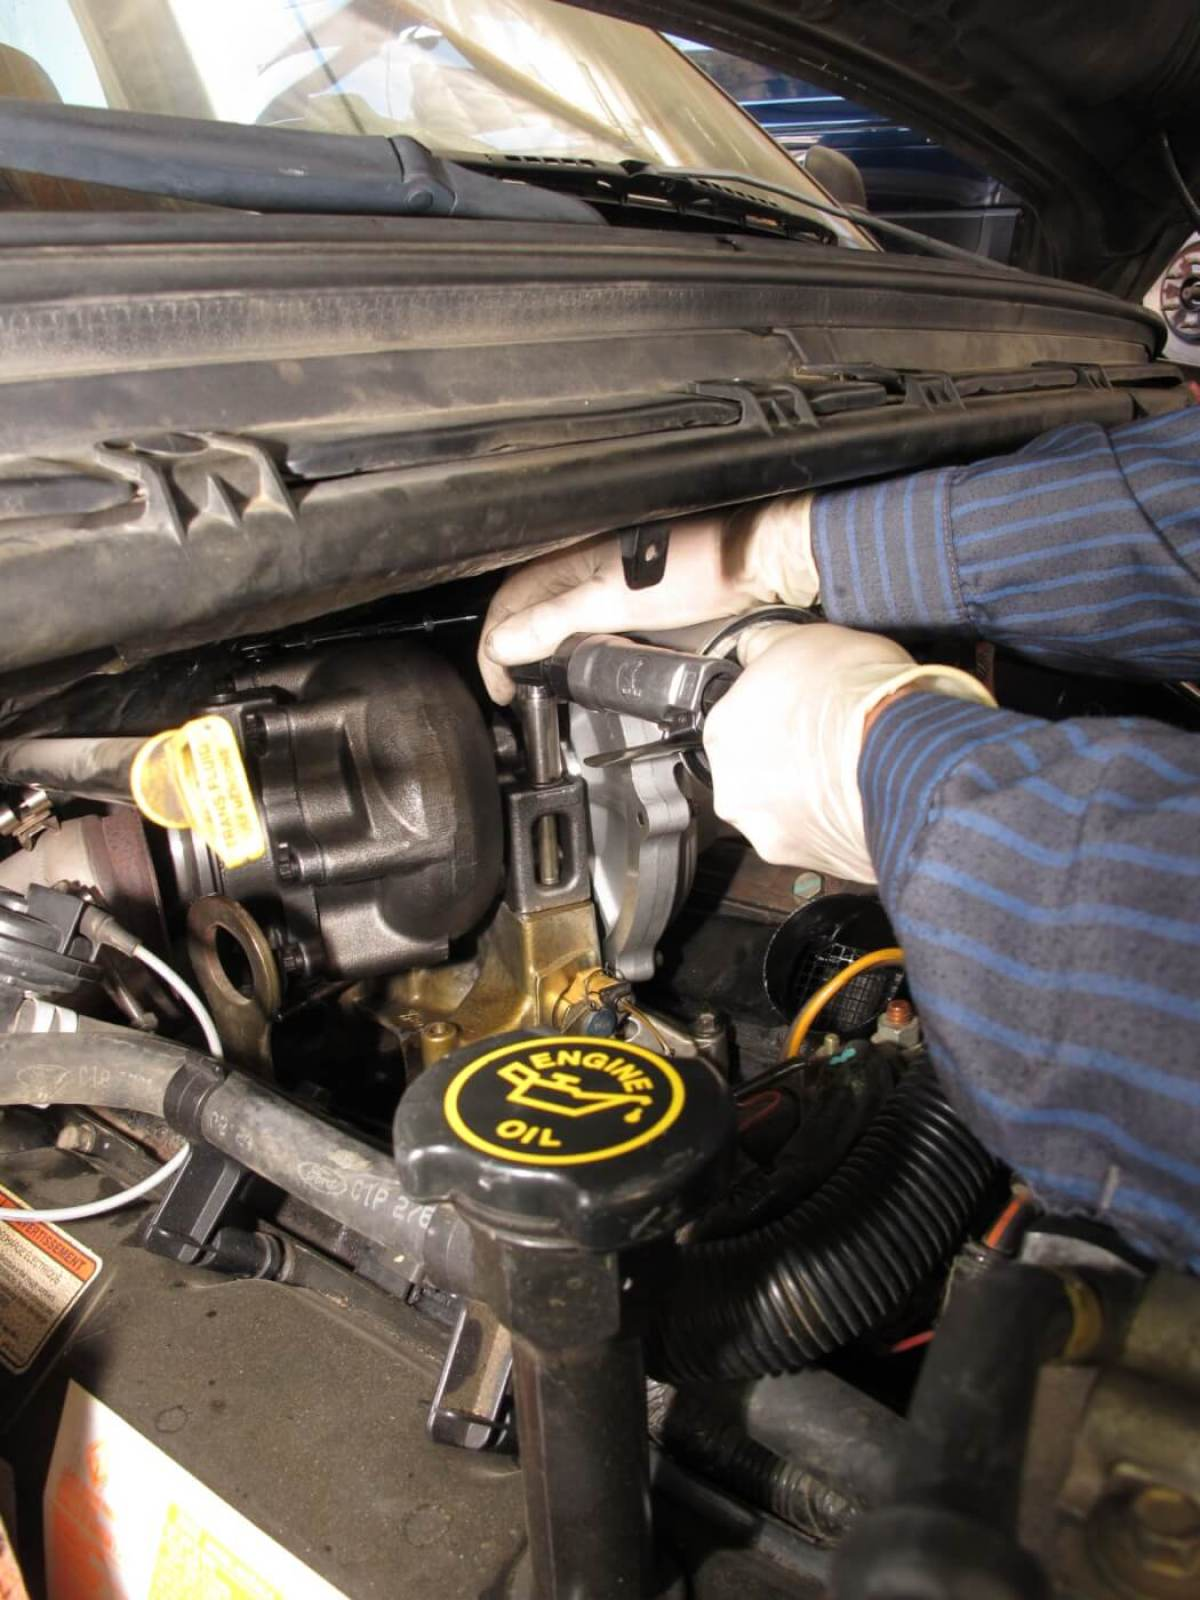 Turbo-Up: More Power and Lower EGT